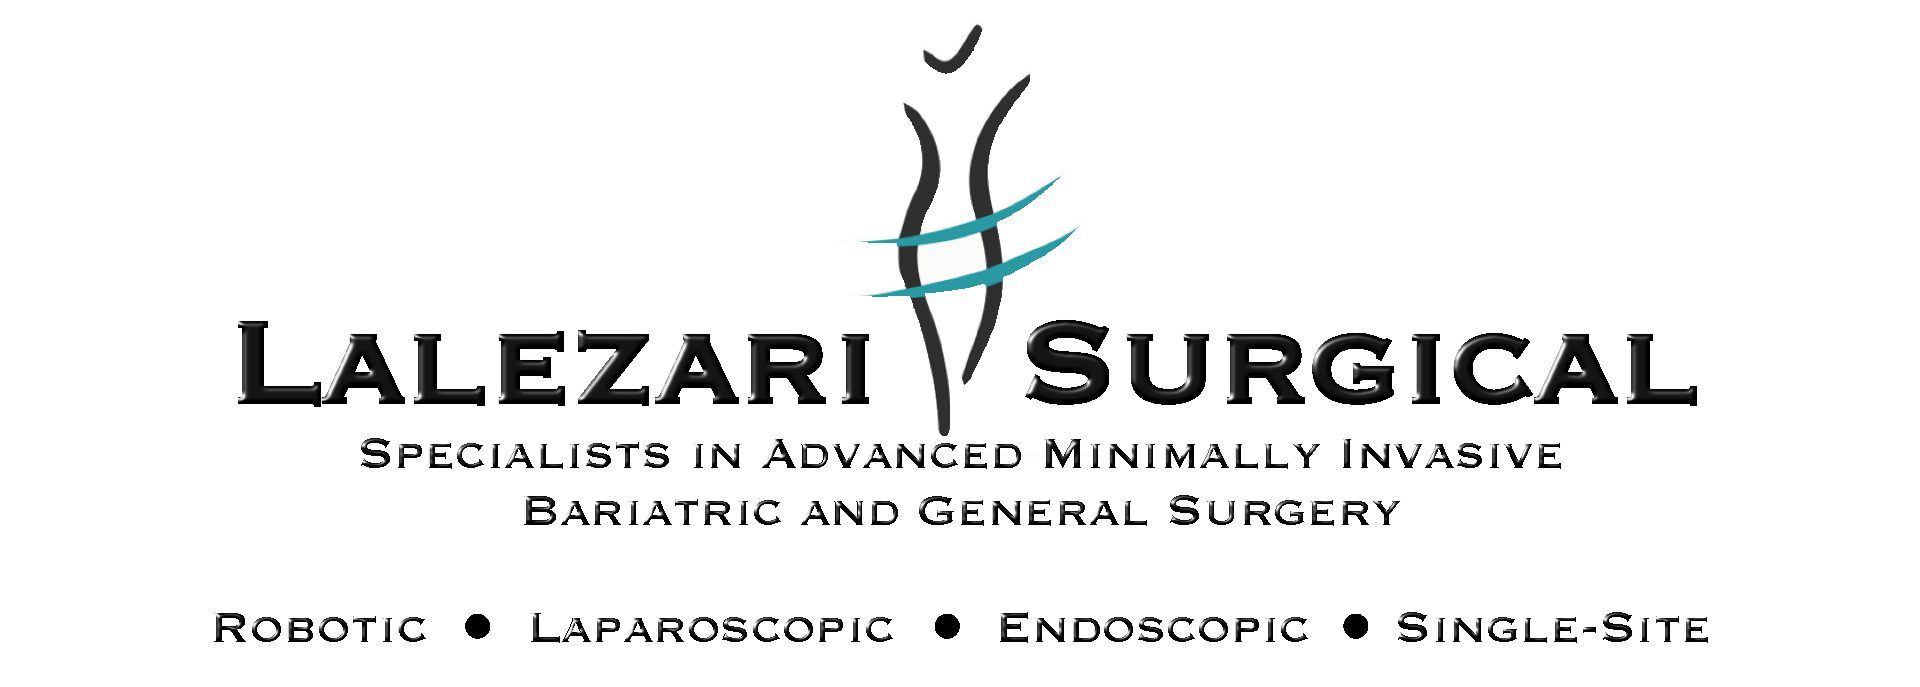 Bariatric Surgery Weight Loss Experts